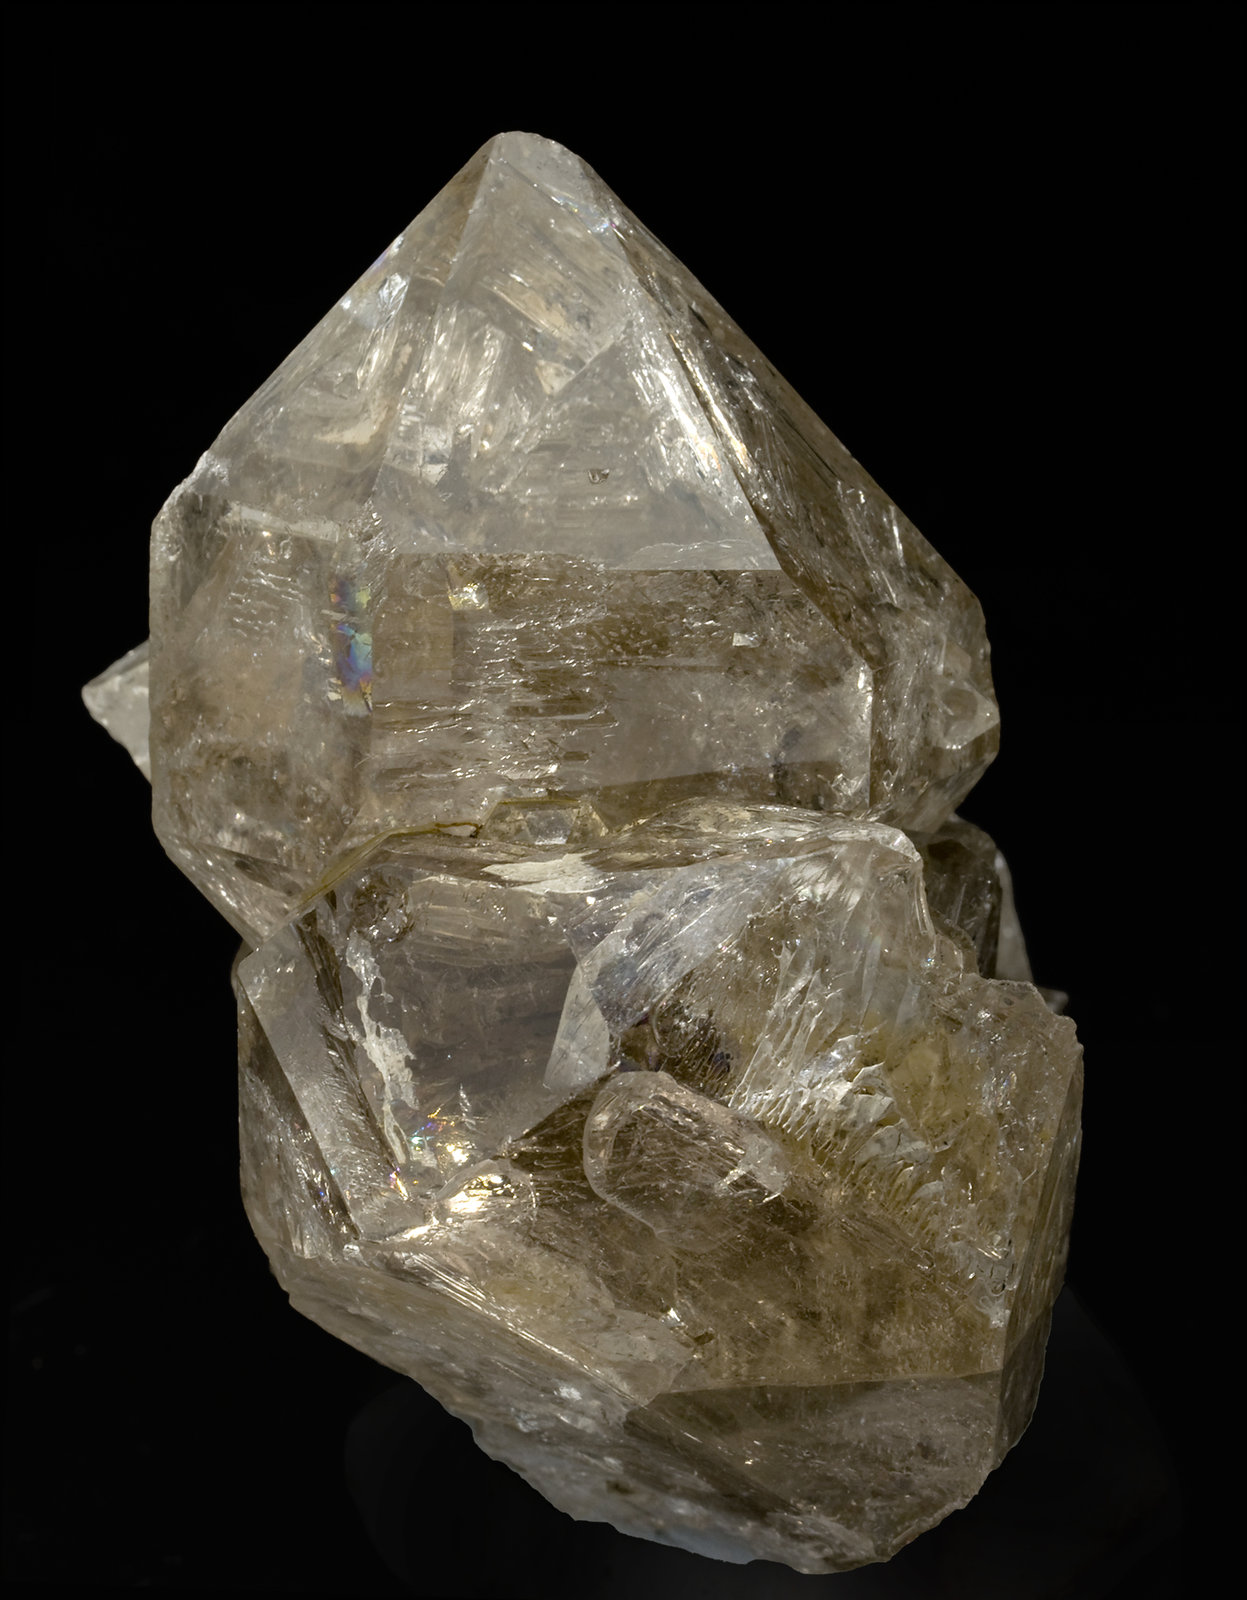 specimens/s_imagesS3/Quartz-EA87S3s.jpg